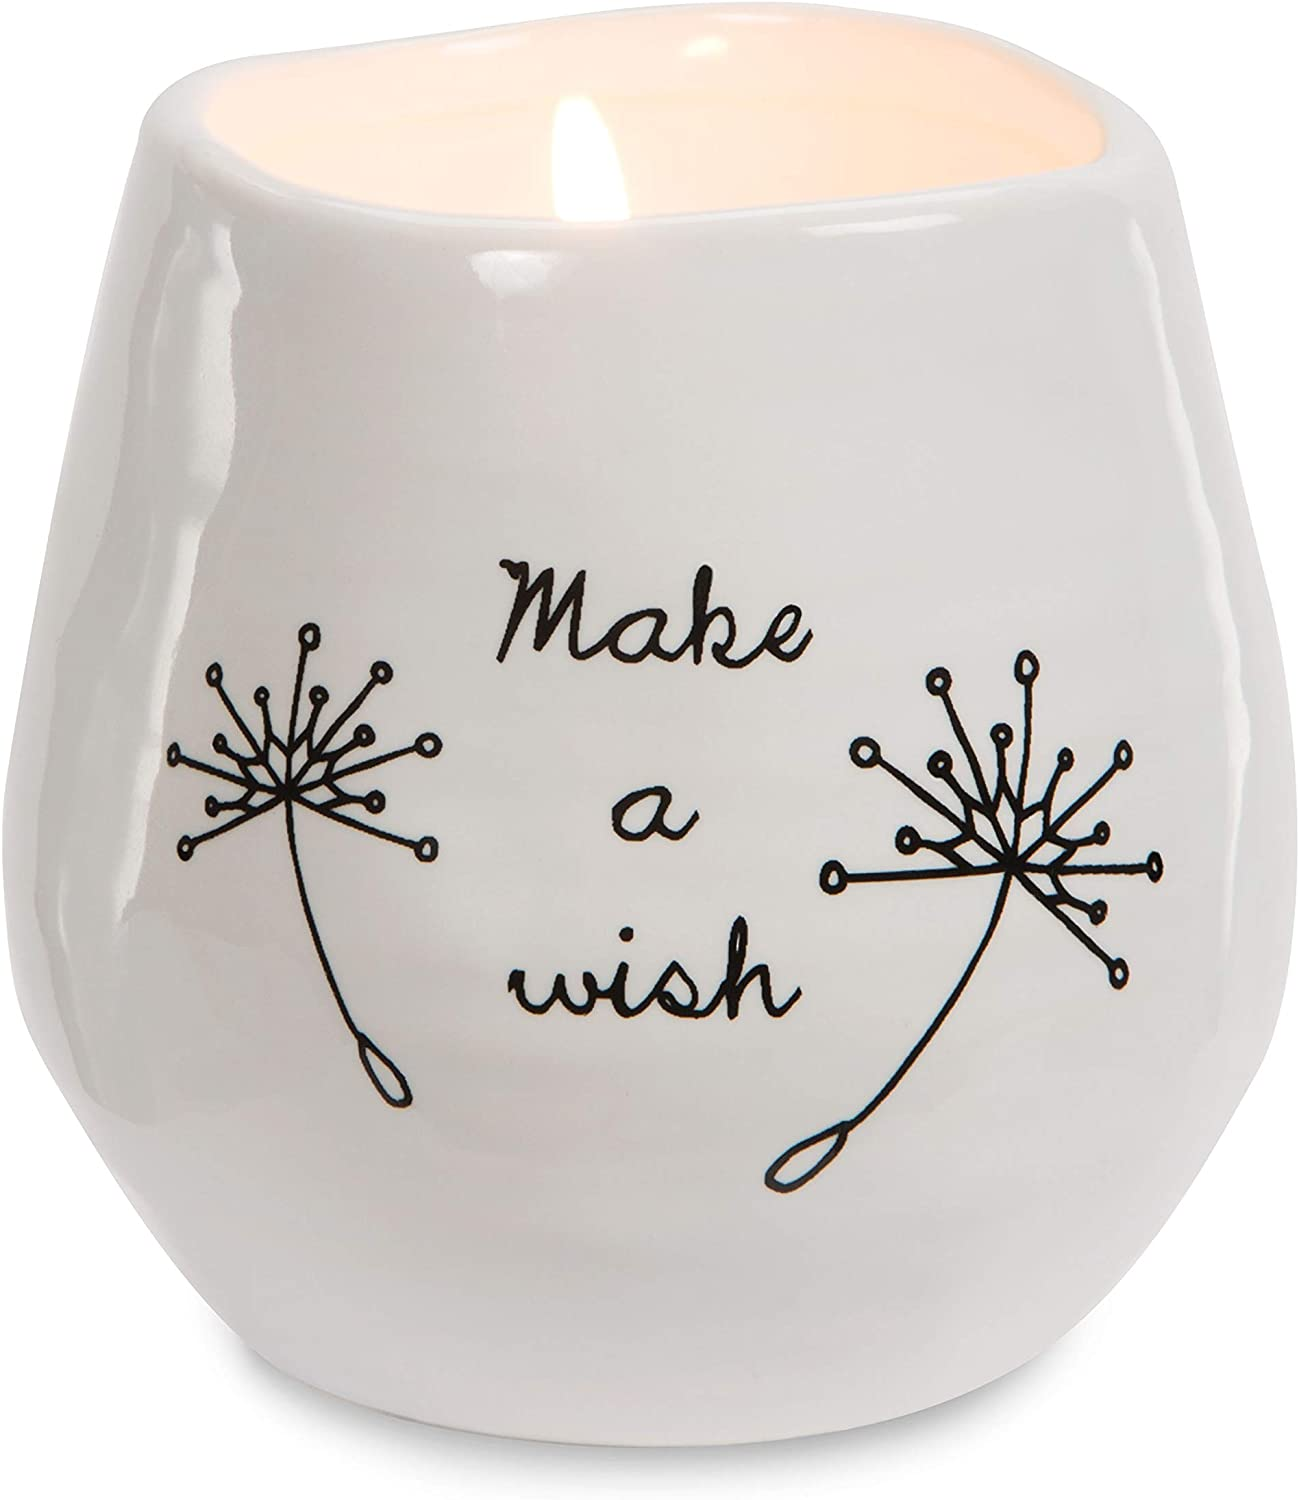 Pavilion Gift Company Plain Dandelion Make a Wish White Ceramic Soy Serenity Scented Candle